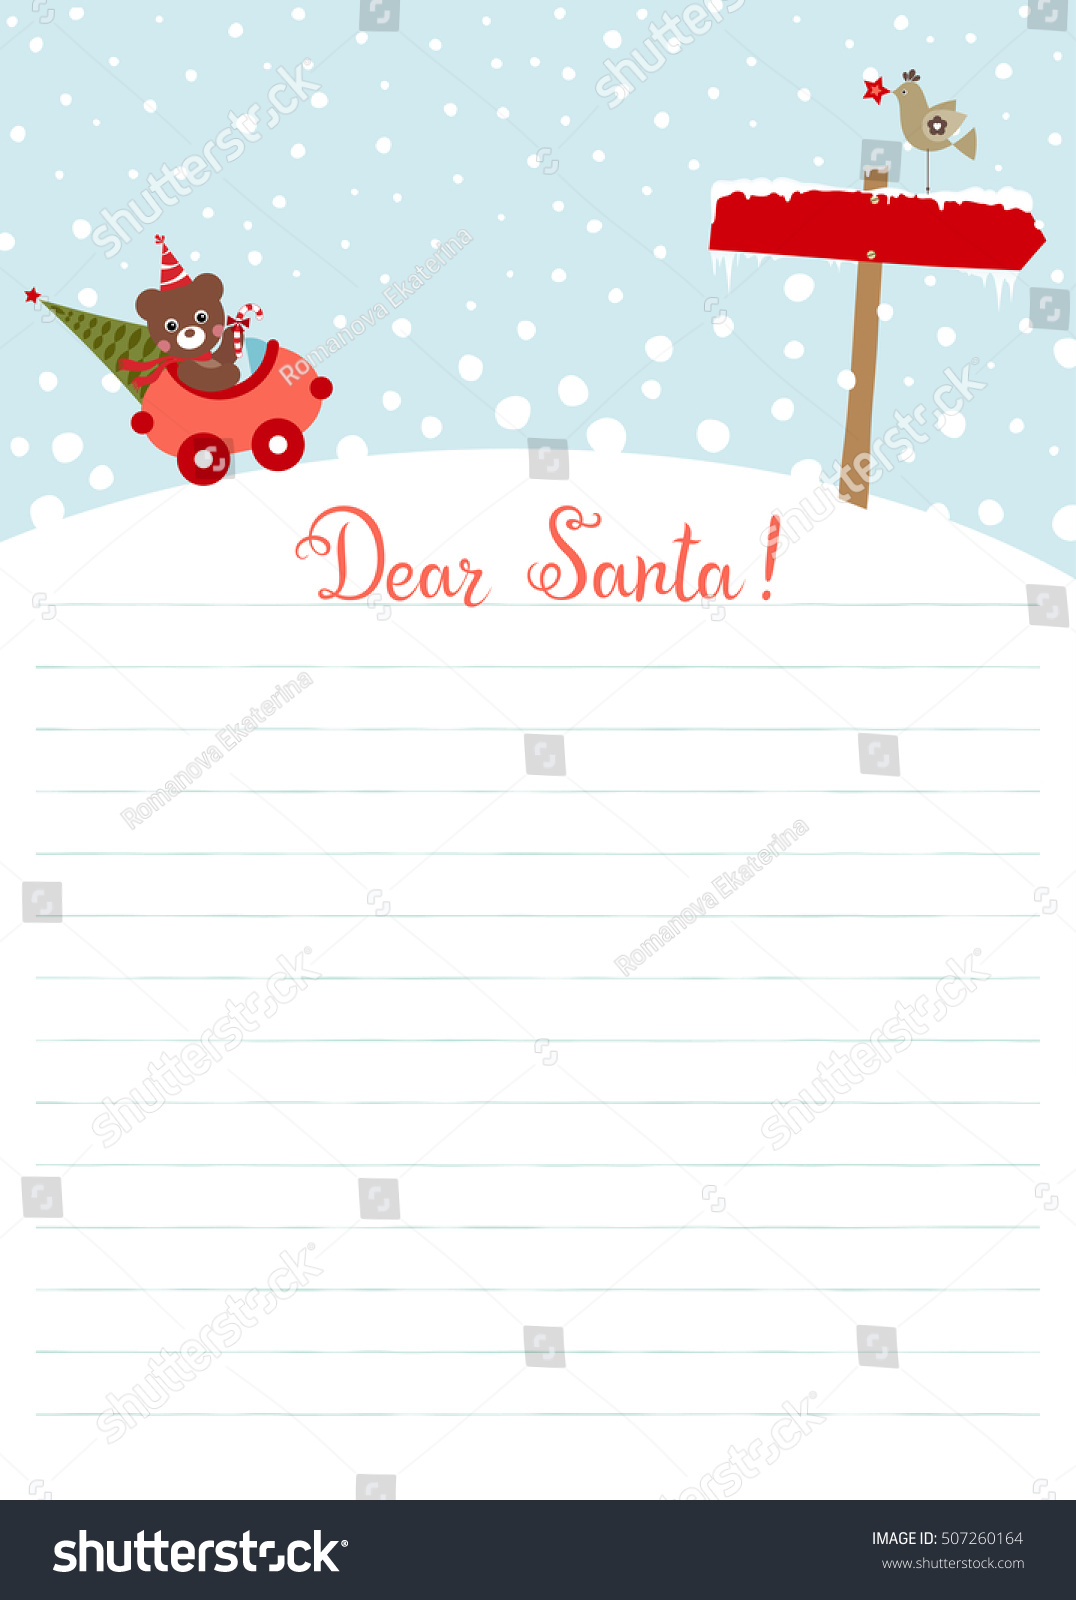 template christmas letter santa claus use stock vector 507260164